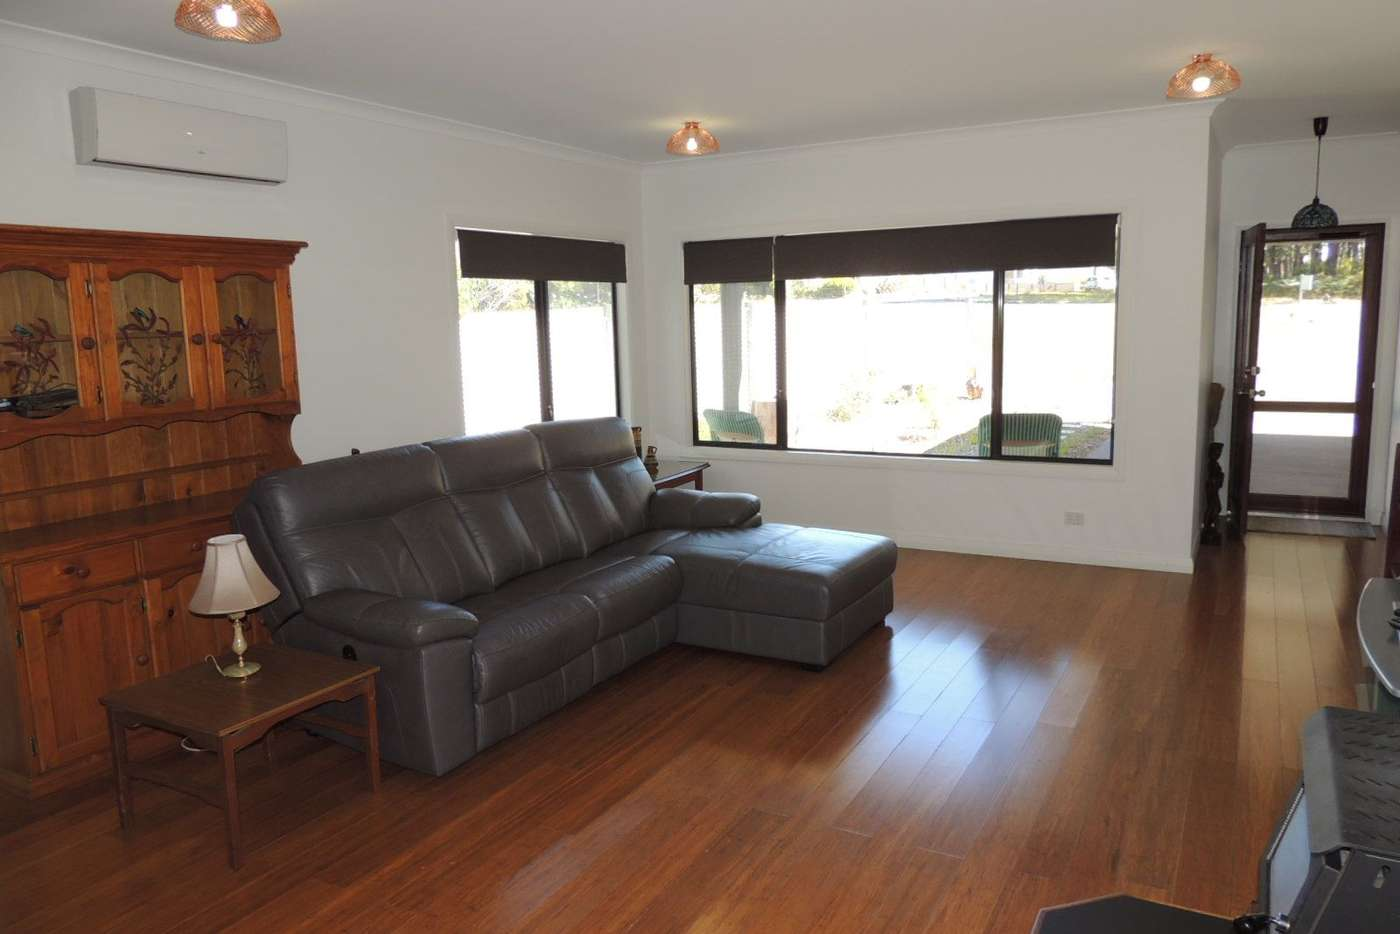 Sixth view of Homely house listing, 4 Buckley Street, Denmark WA 6333